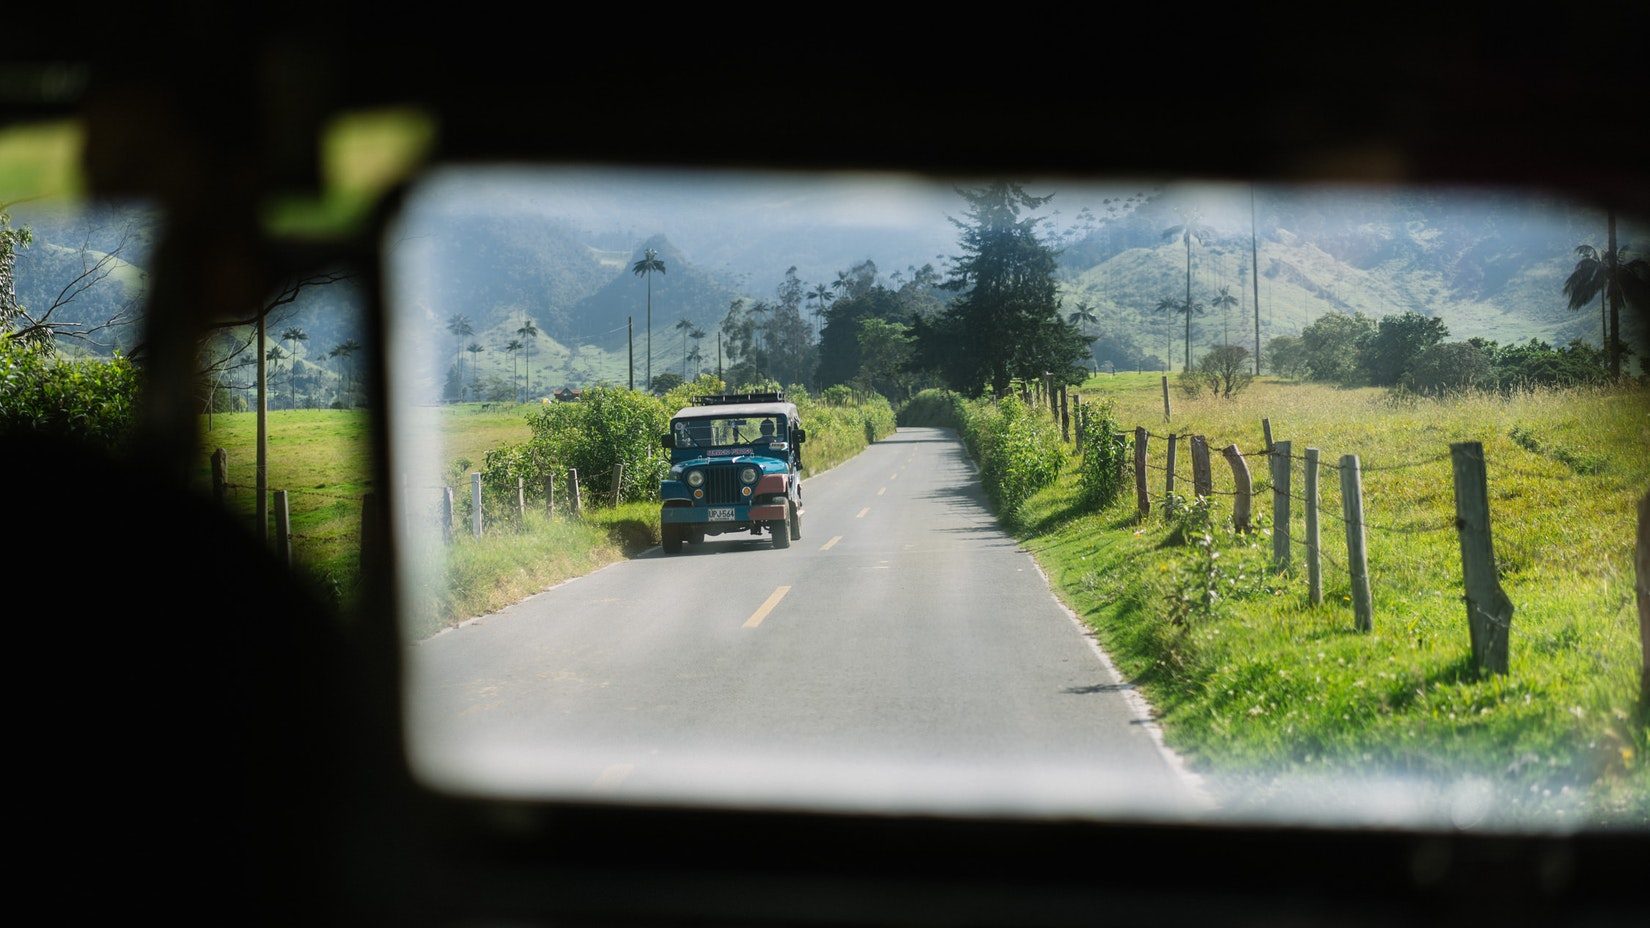 Looking at the window of a Jeep in Salento, Colombia